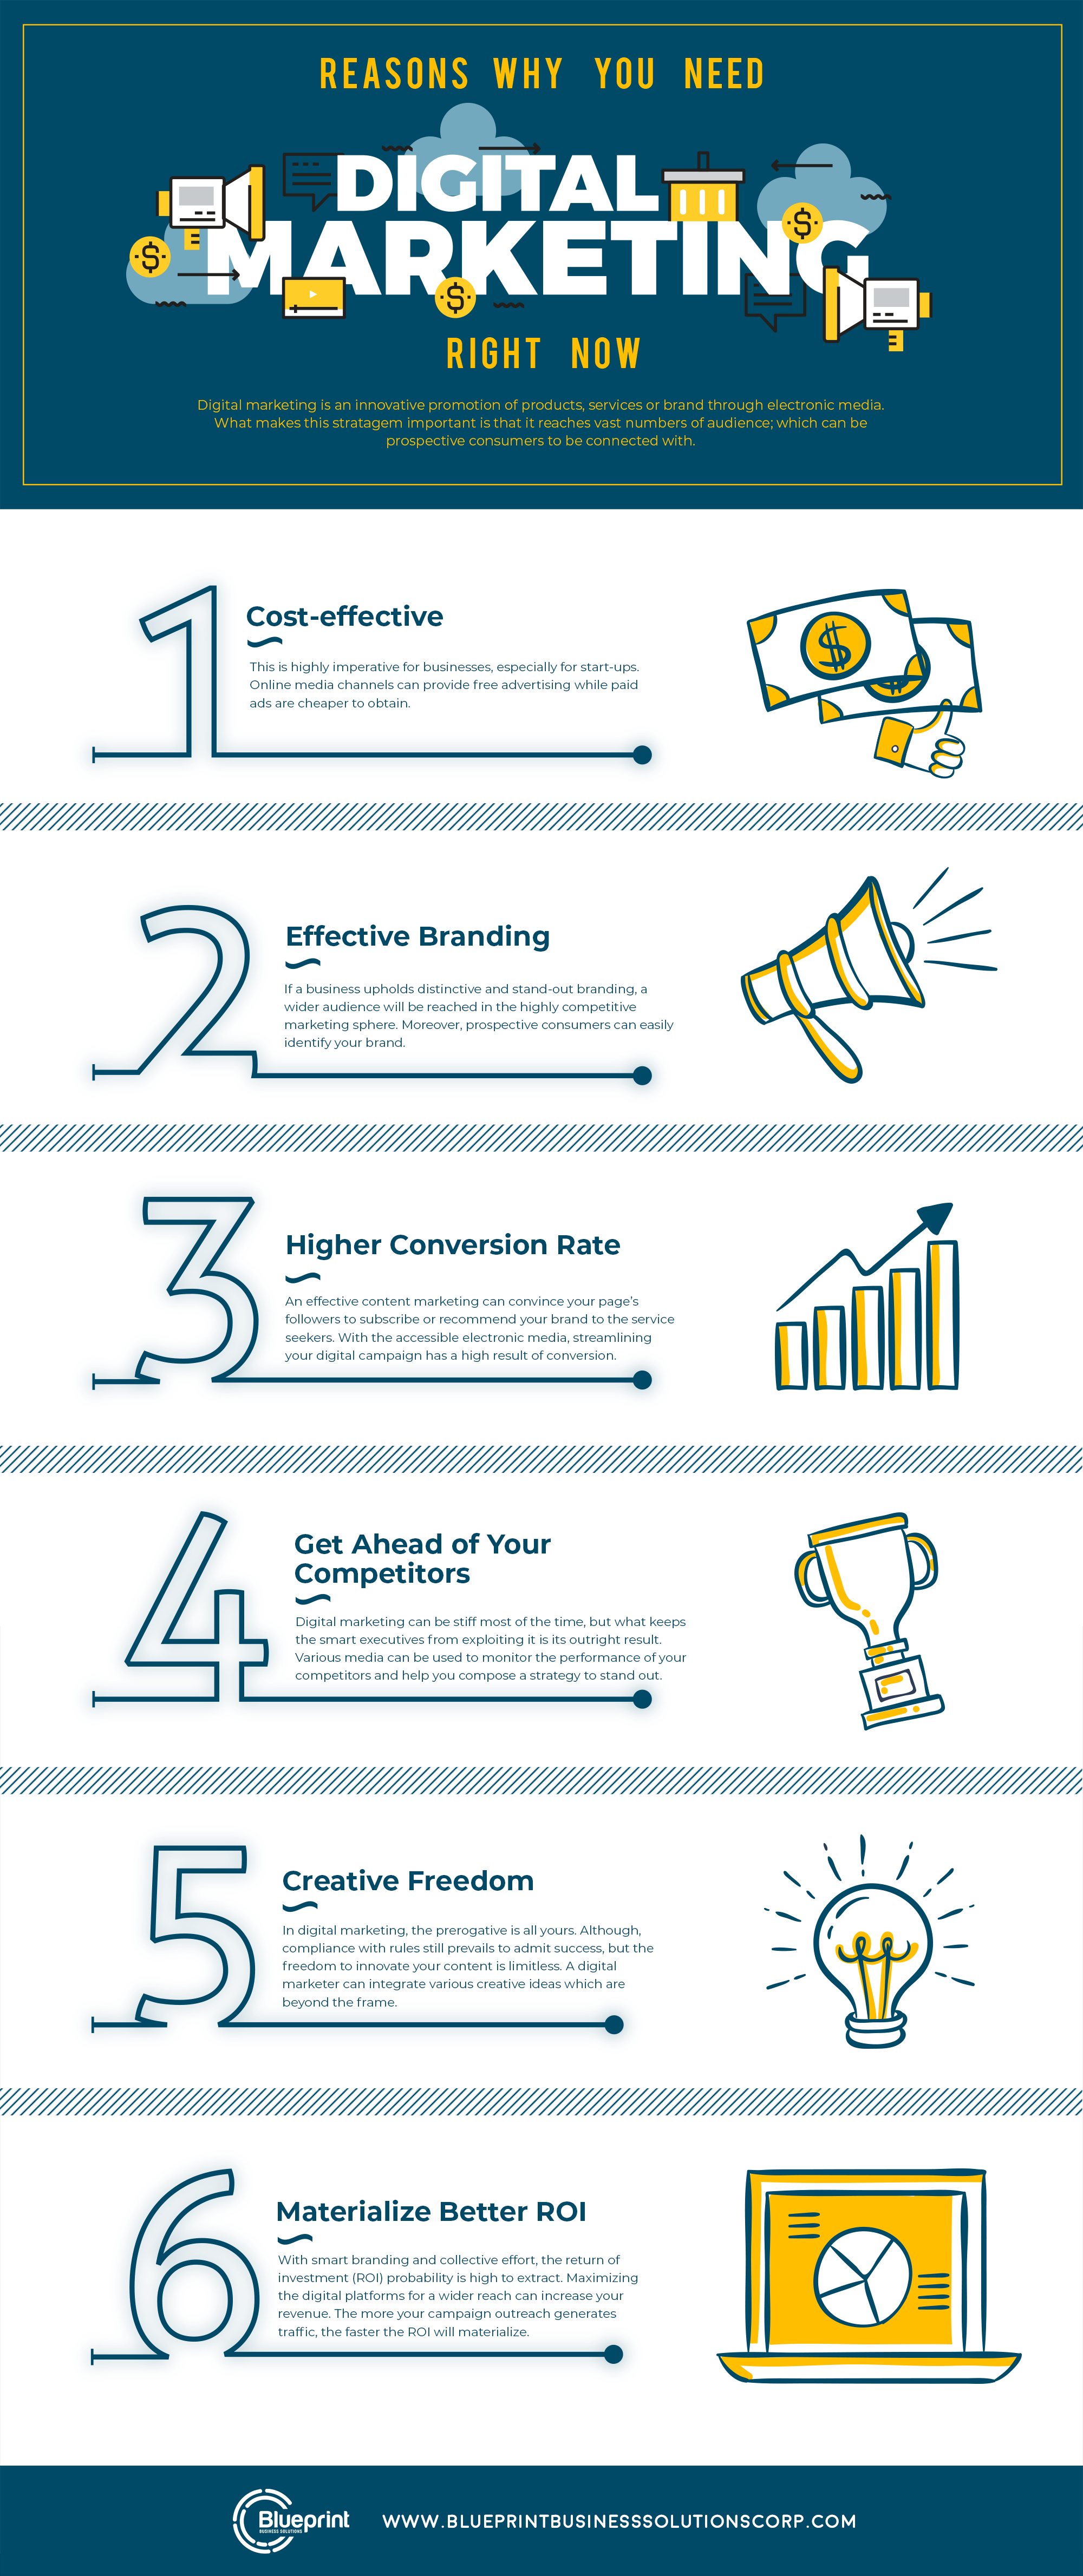 Digital Marketing Is An Innovative Promotion Of Products Services Or Brand Through Elect Digital Marketing Business Infographic Marketing Business Infographic